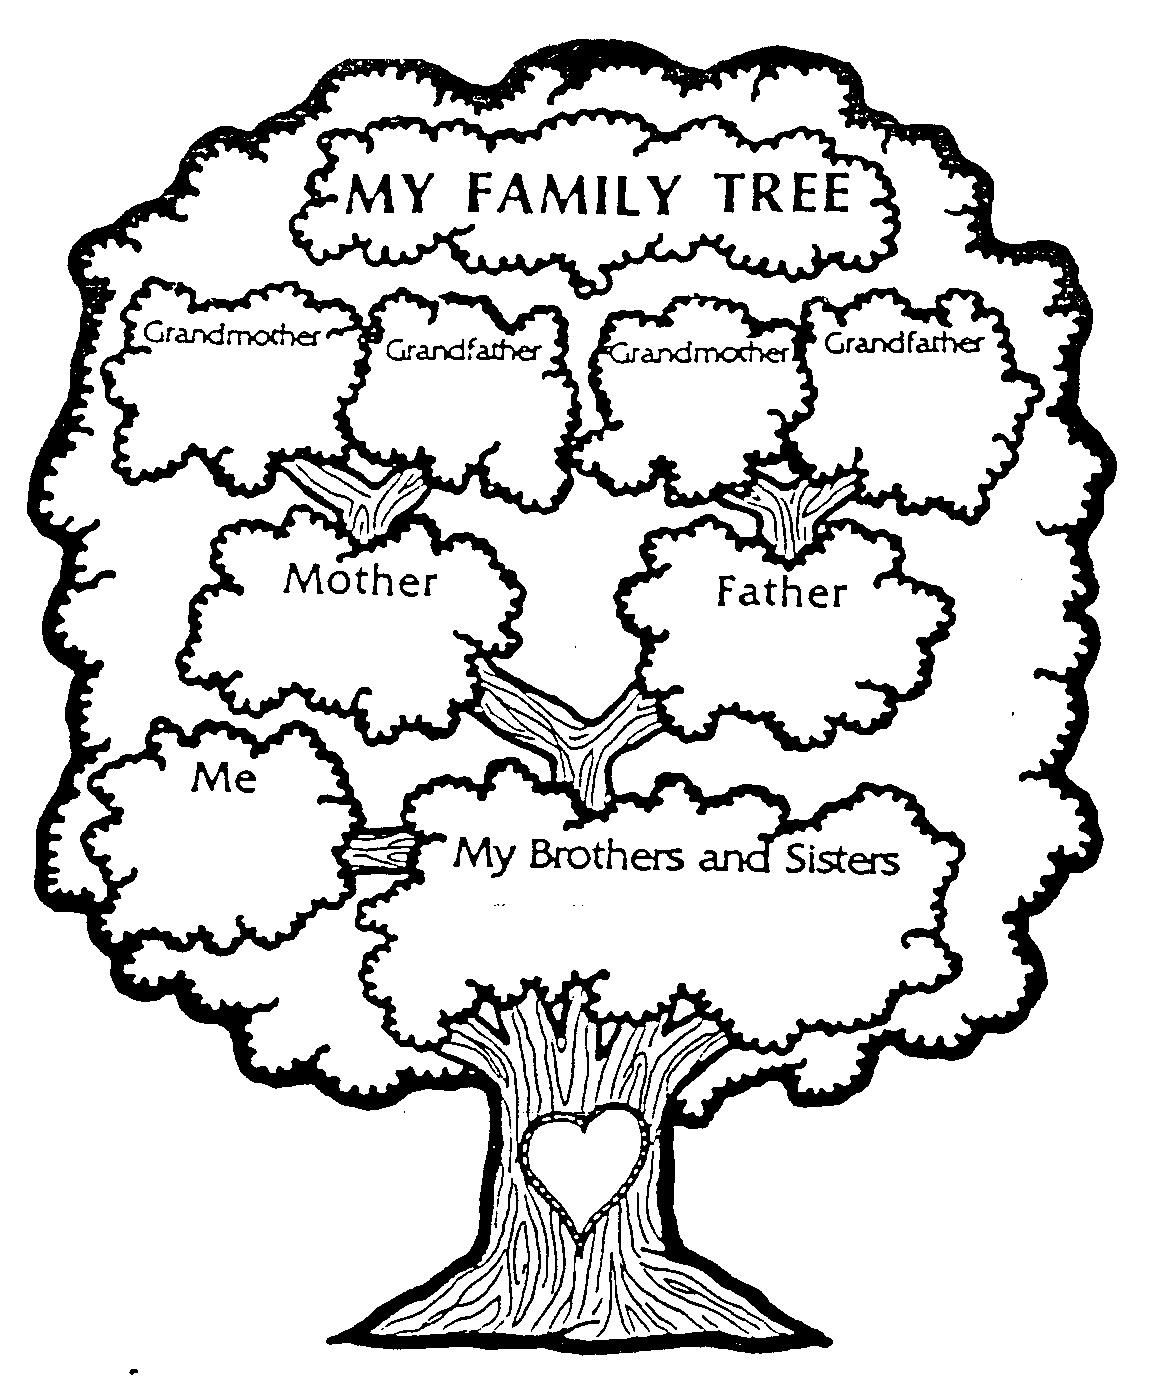 family tree daisy scouts troop 1906 pinterest family trees